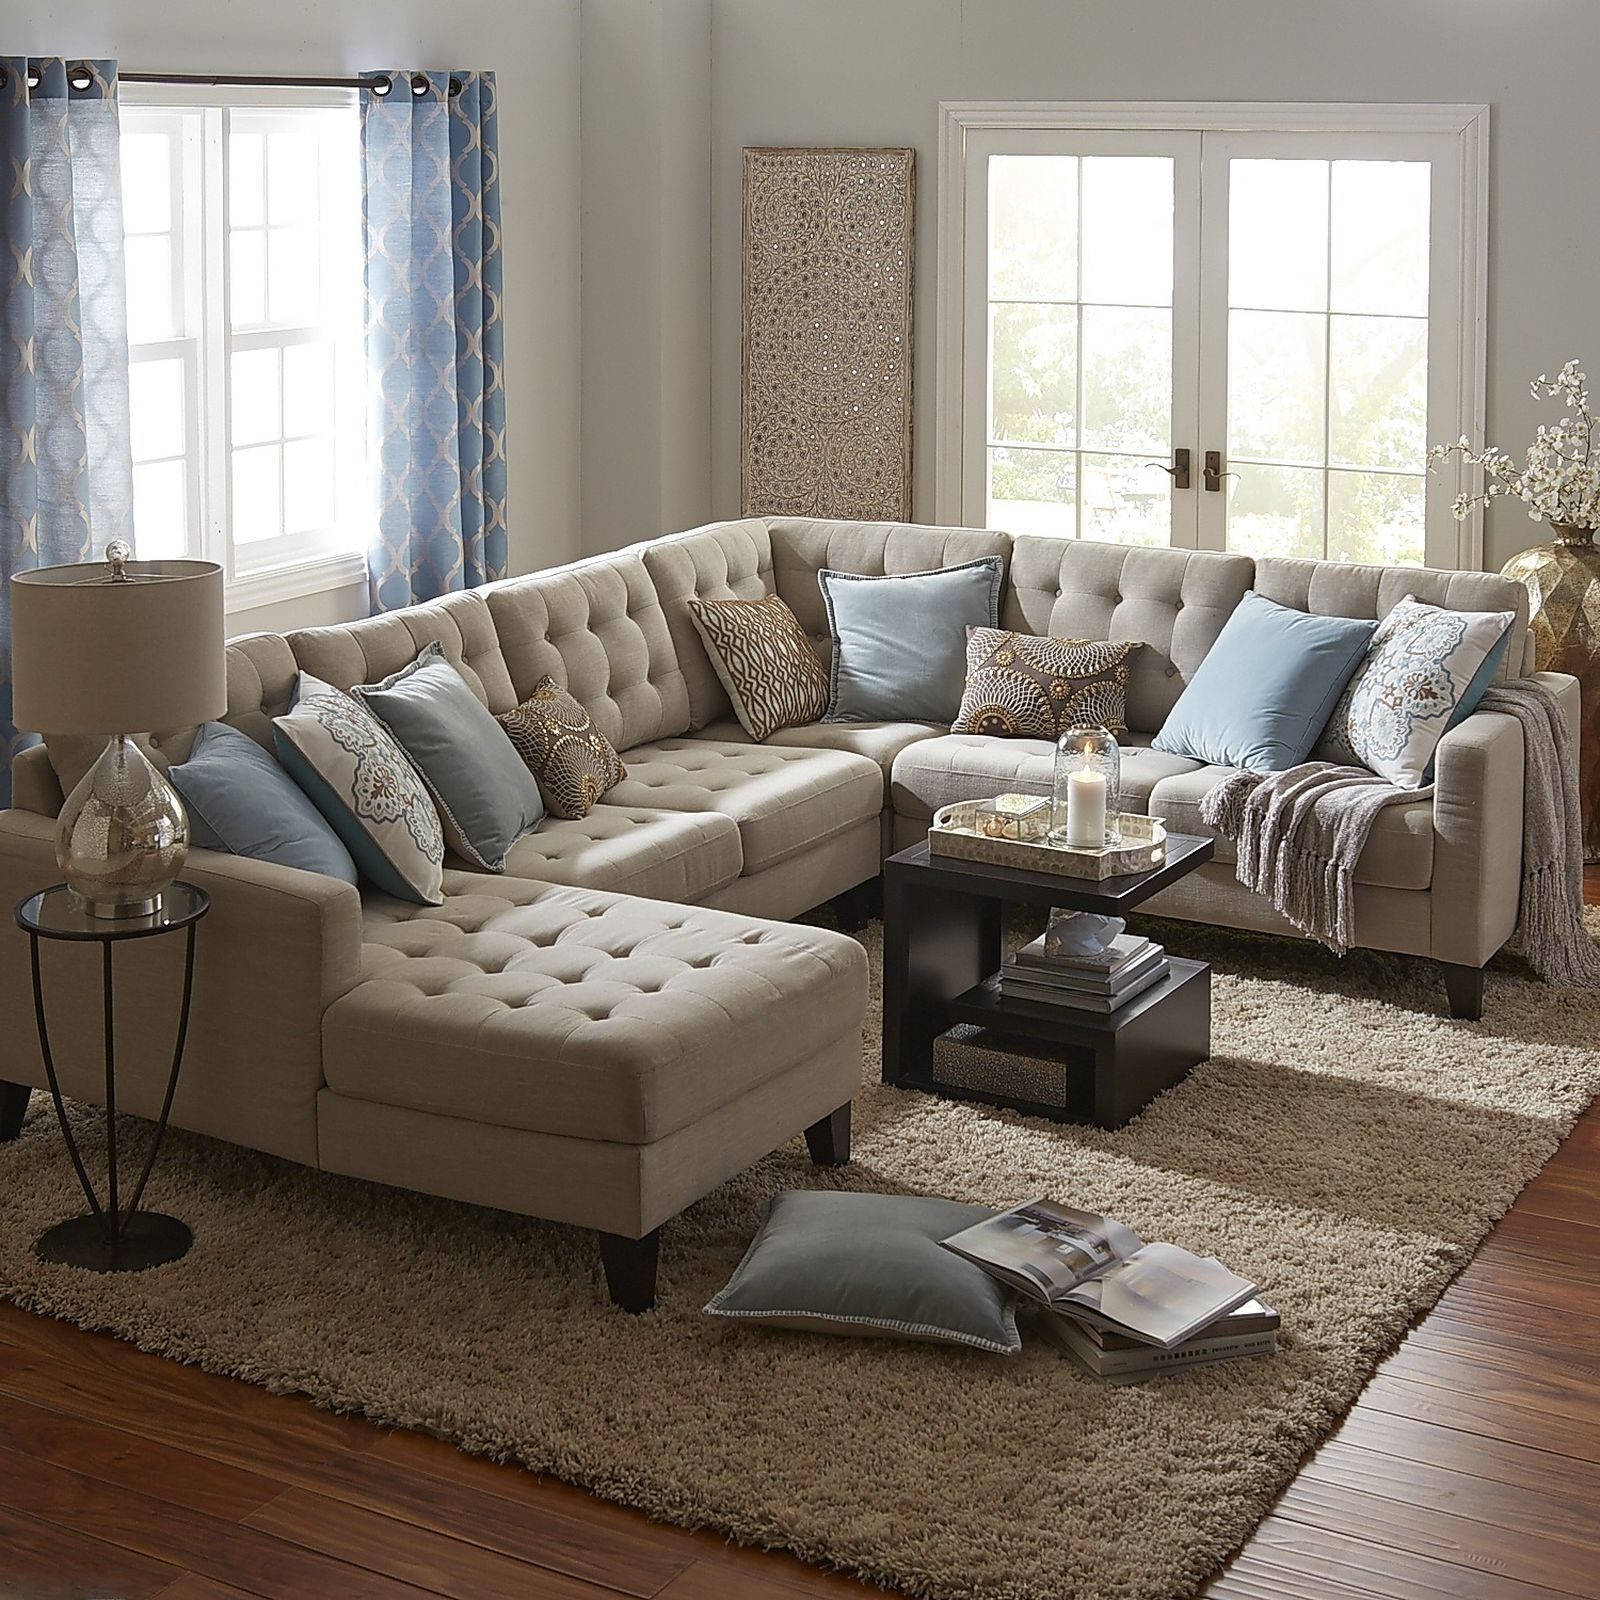 Well Known Epic Sectional Sofas 89 Living Room Sofa Inspiration With Inside Sectional Sofas (View 13 of 15)